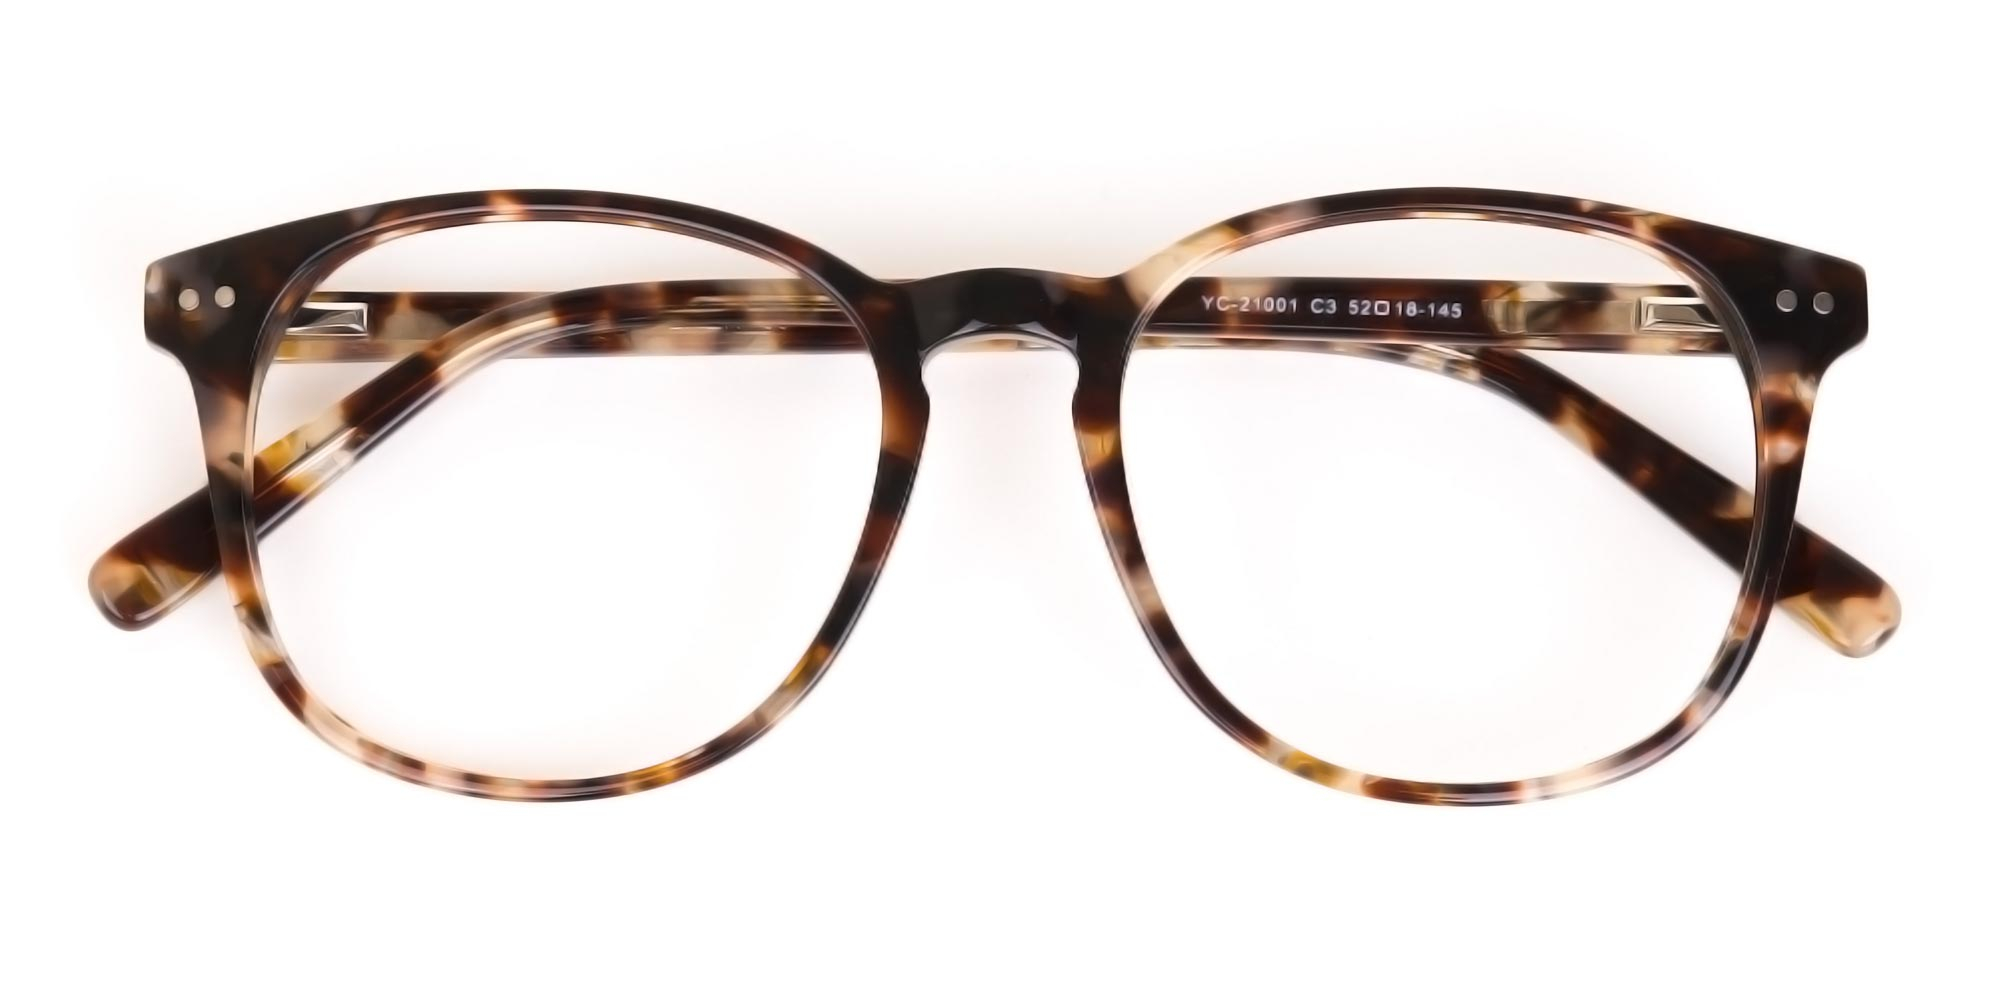 Oversized Glasses in Creamy Brown Tortoiseshell